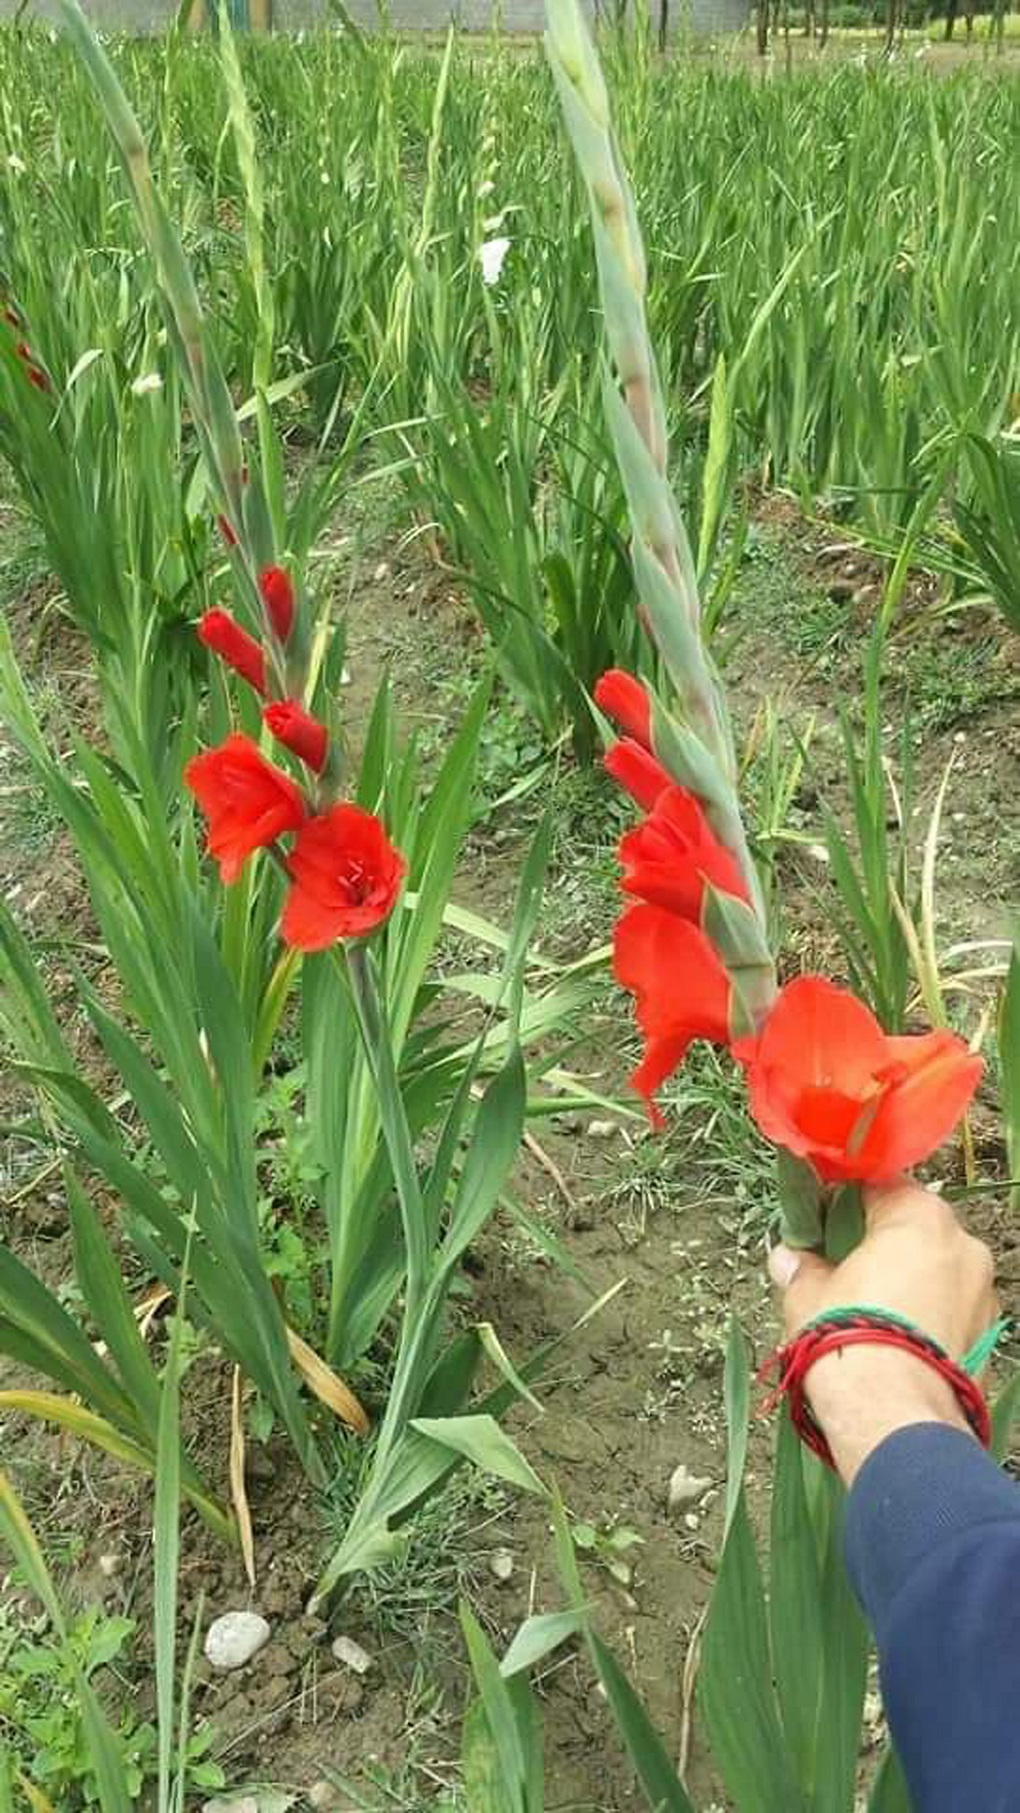 Gladiolus flower field near Shiger [image by: Ghulam Mohiuddin]